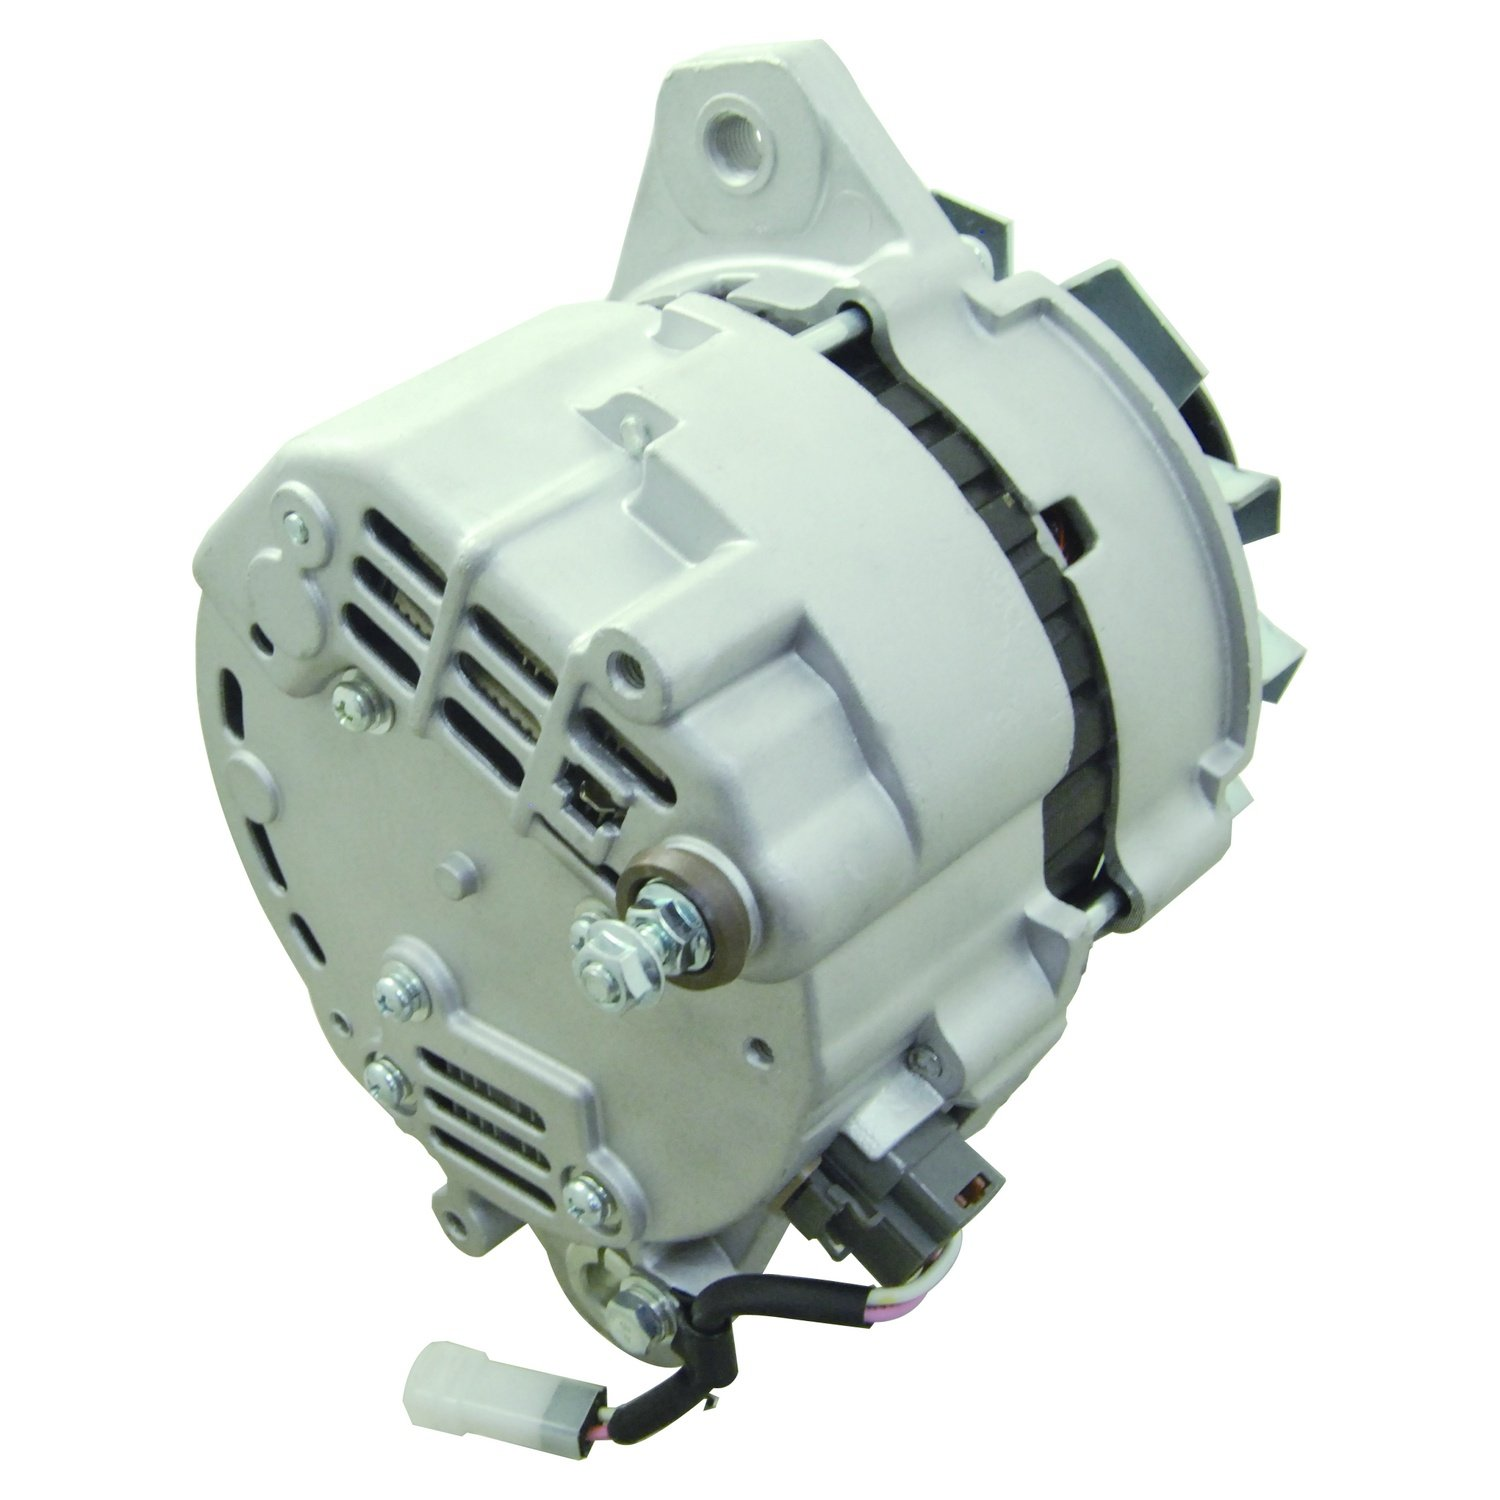 NEW ALTERNATOR CATERPILLAR EXCAVATOR 24 VOLT 2128561, 5I8085, 10R2576, A004TU3586, 34368-02300, A4TU3586 AJ-Elec